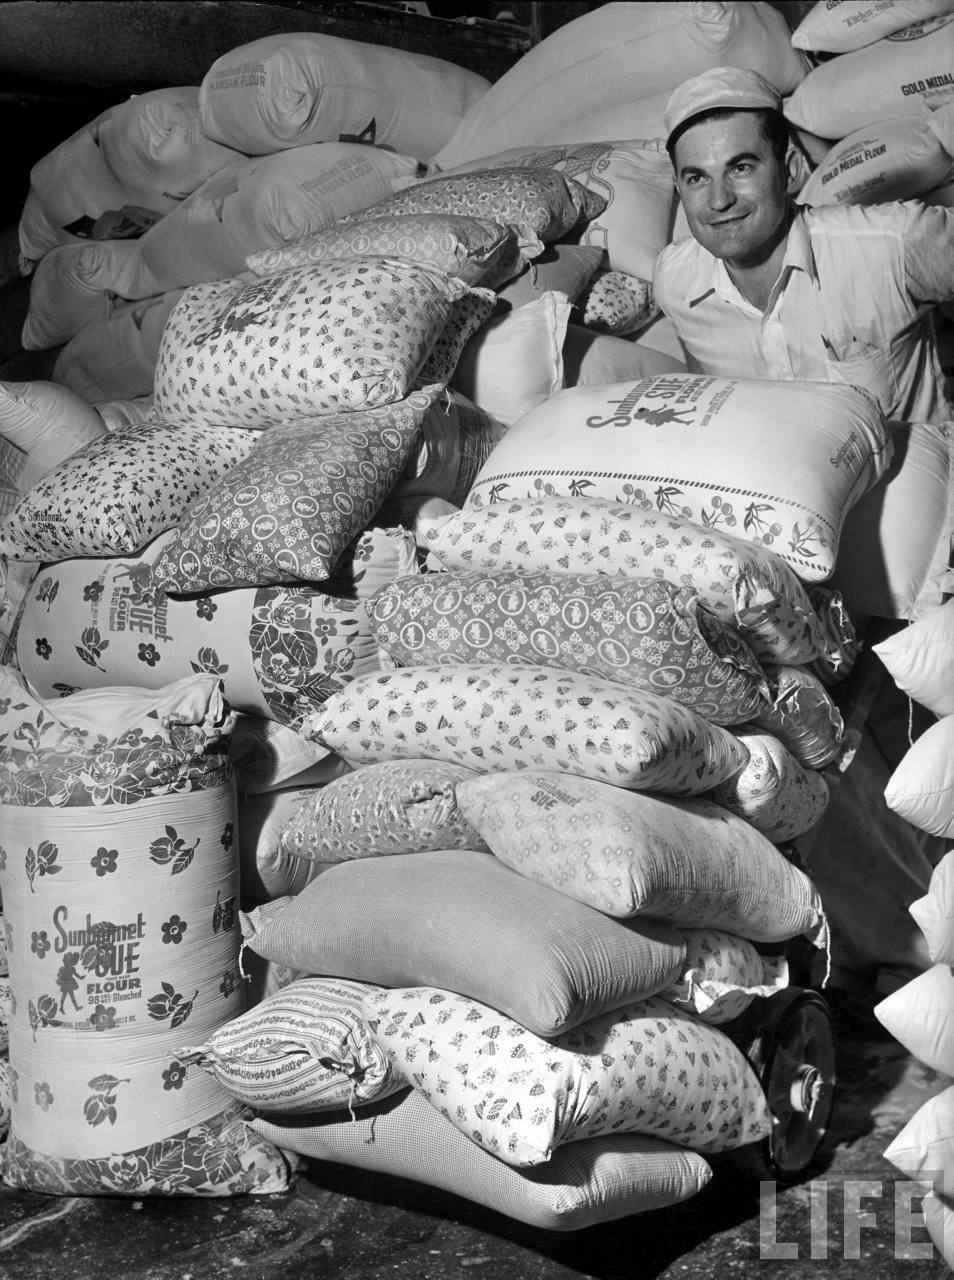 Warehouse worker wheeling colorfully printed flour sacks which housewives use to make dresses because the labels wash out, at Sunbonnet Sue flour mill.